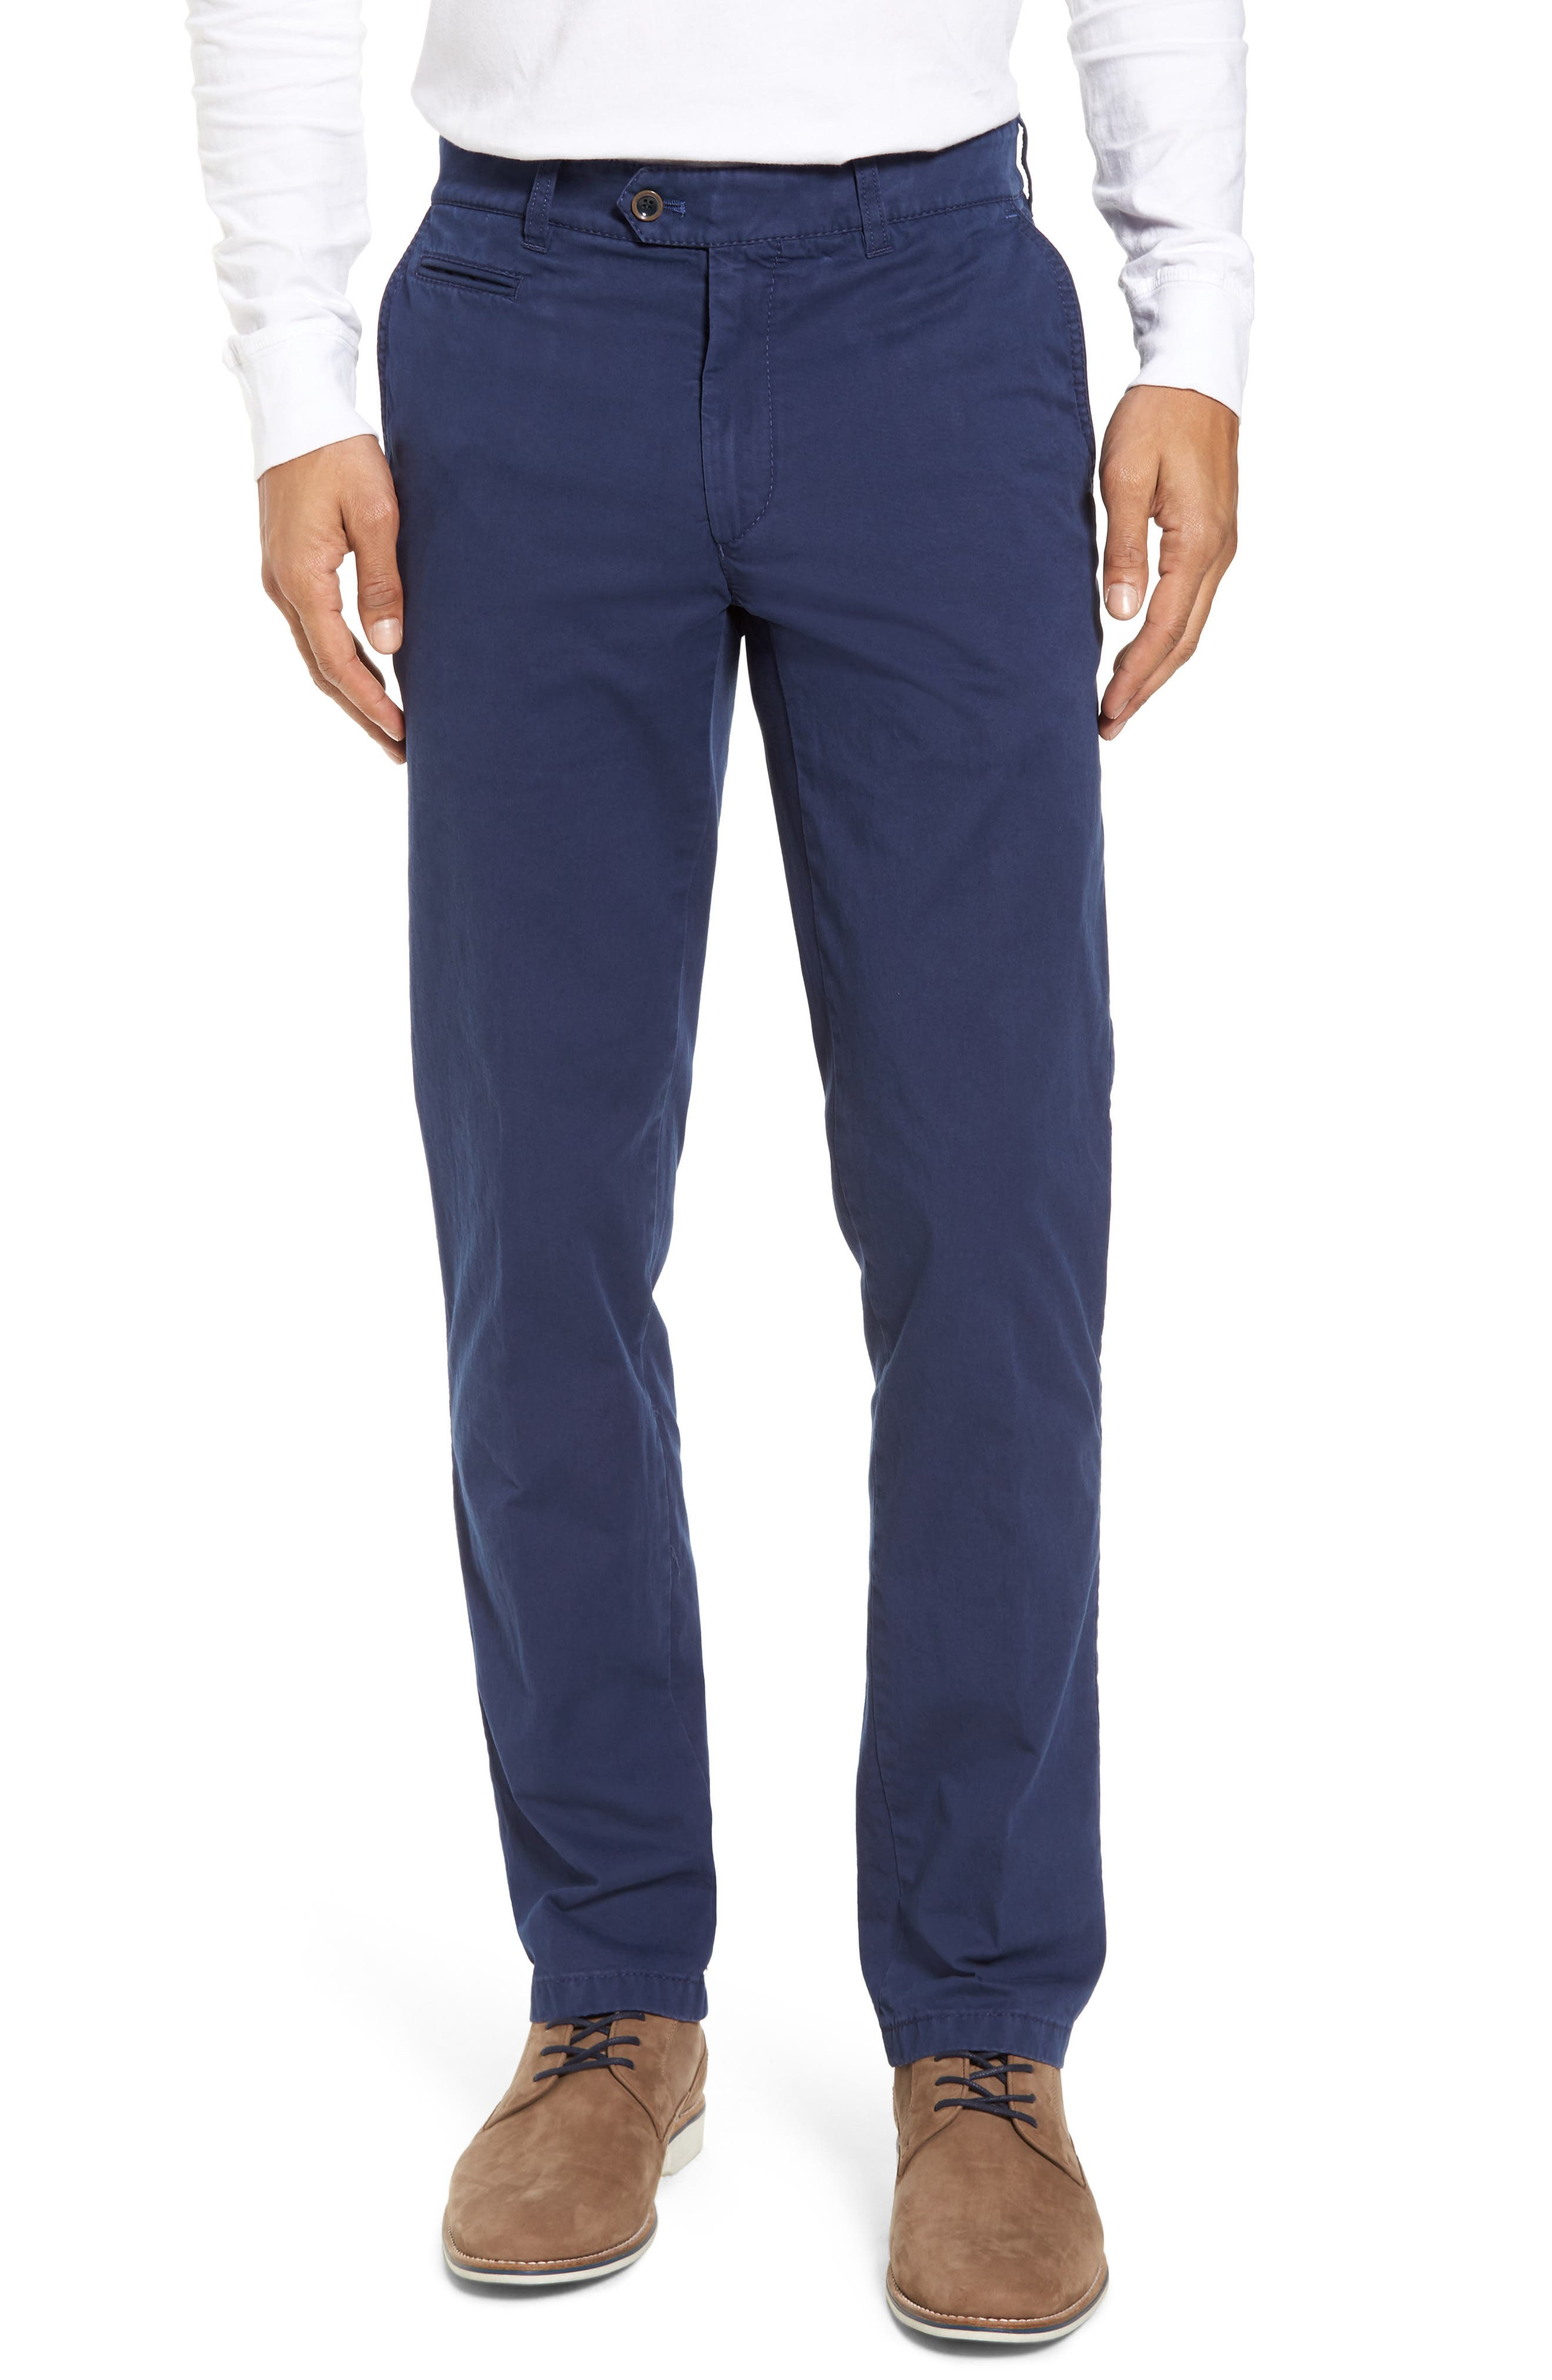 Everest Flat Front Chinos,                             Main thumbnail 1, color,                             Pacific